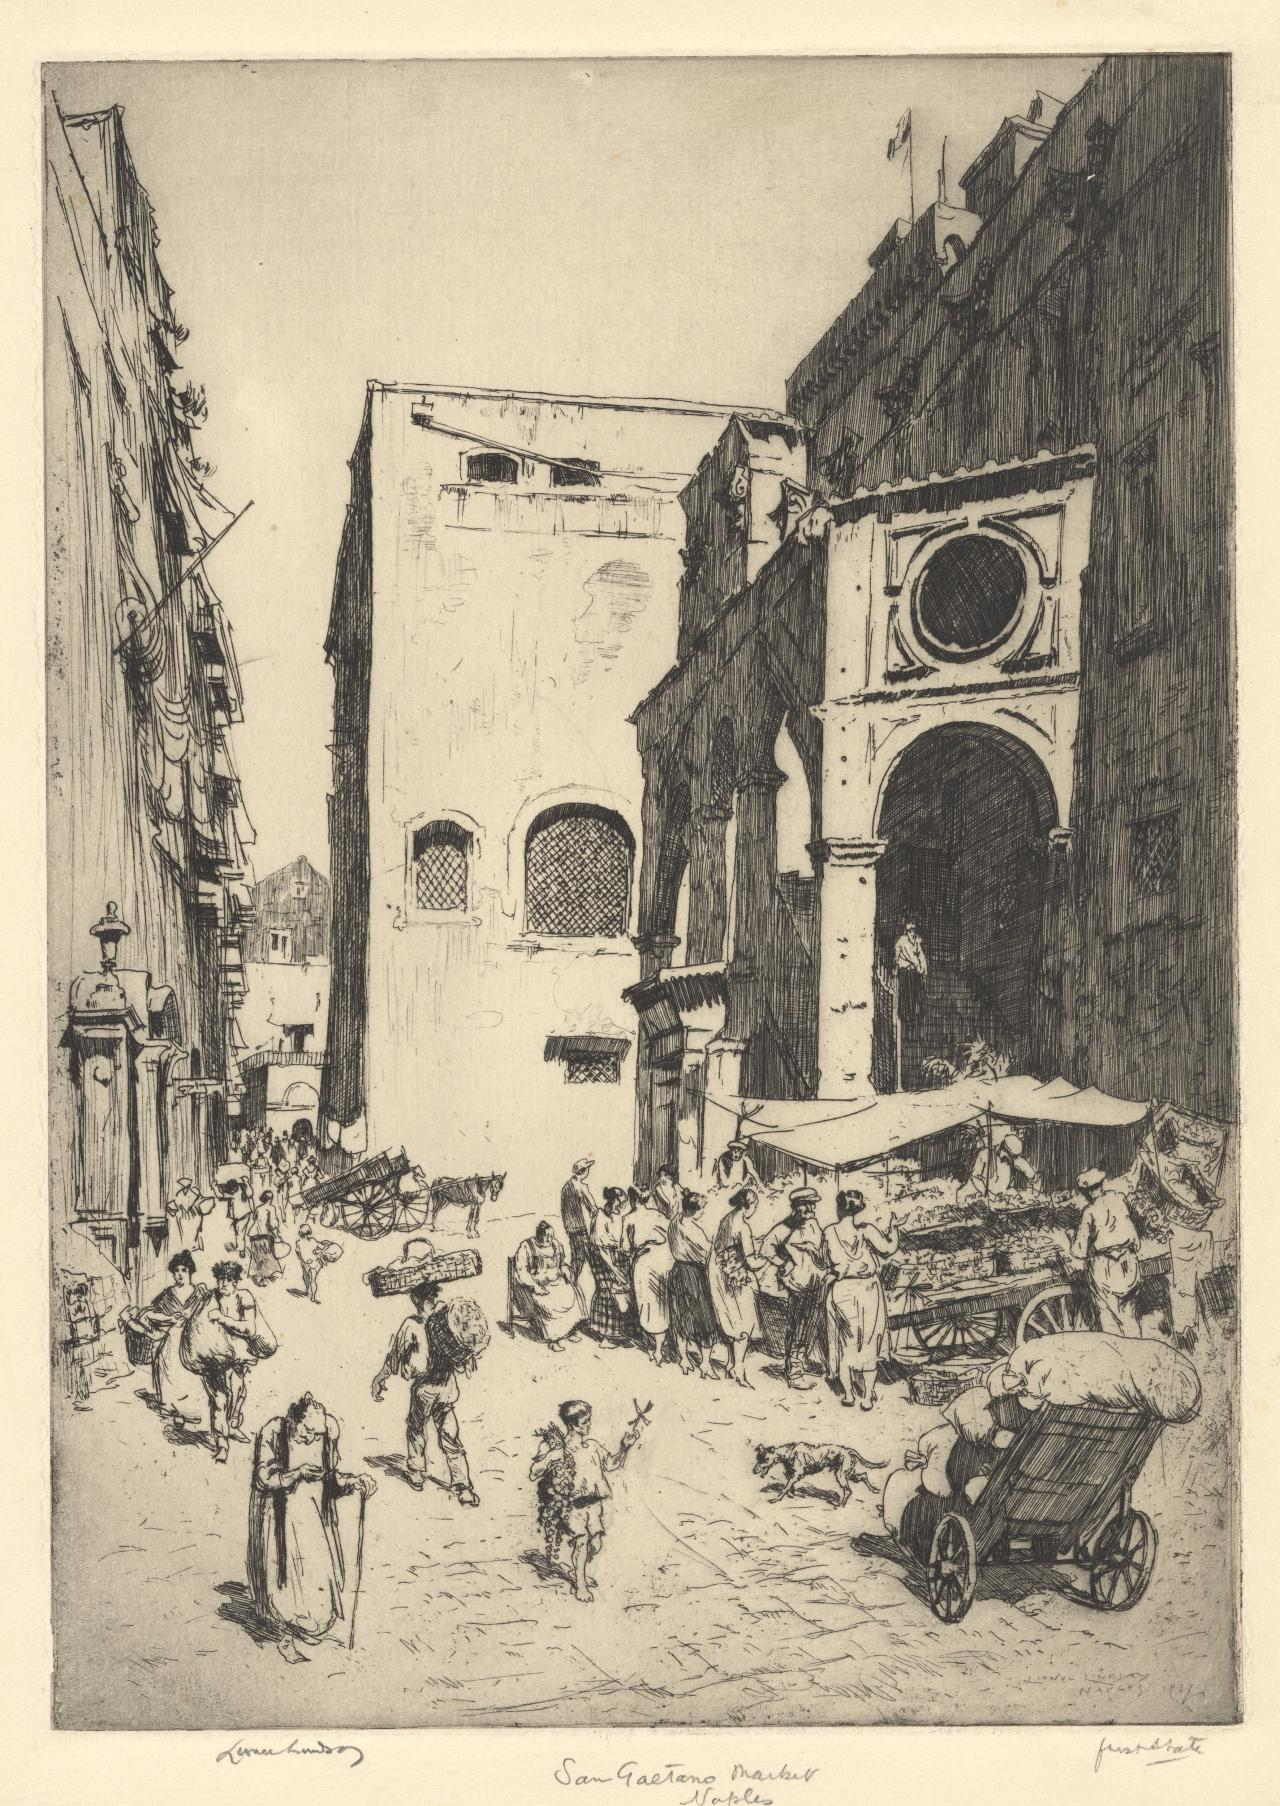 Little market, San Gaetano, Naples